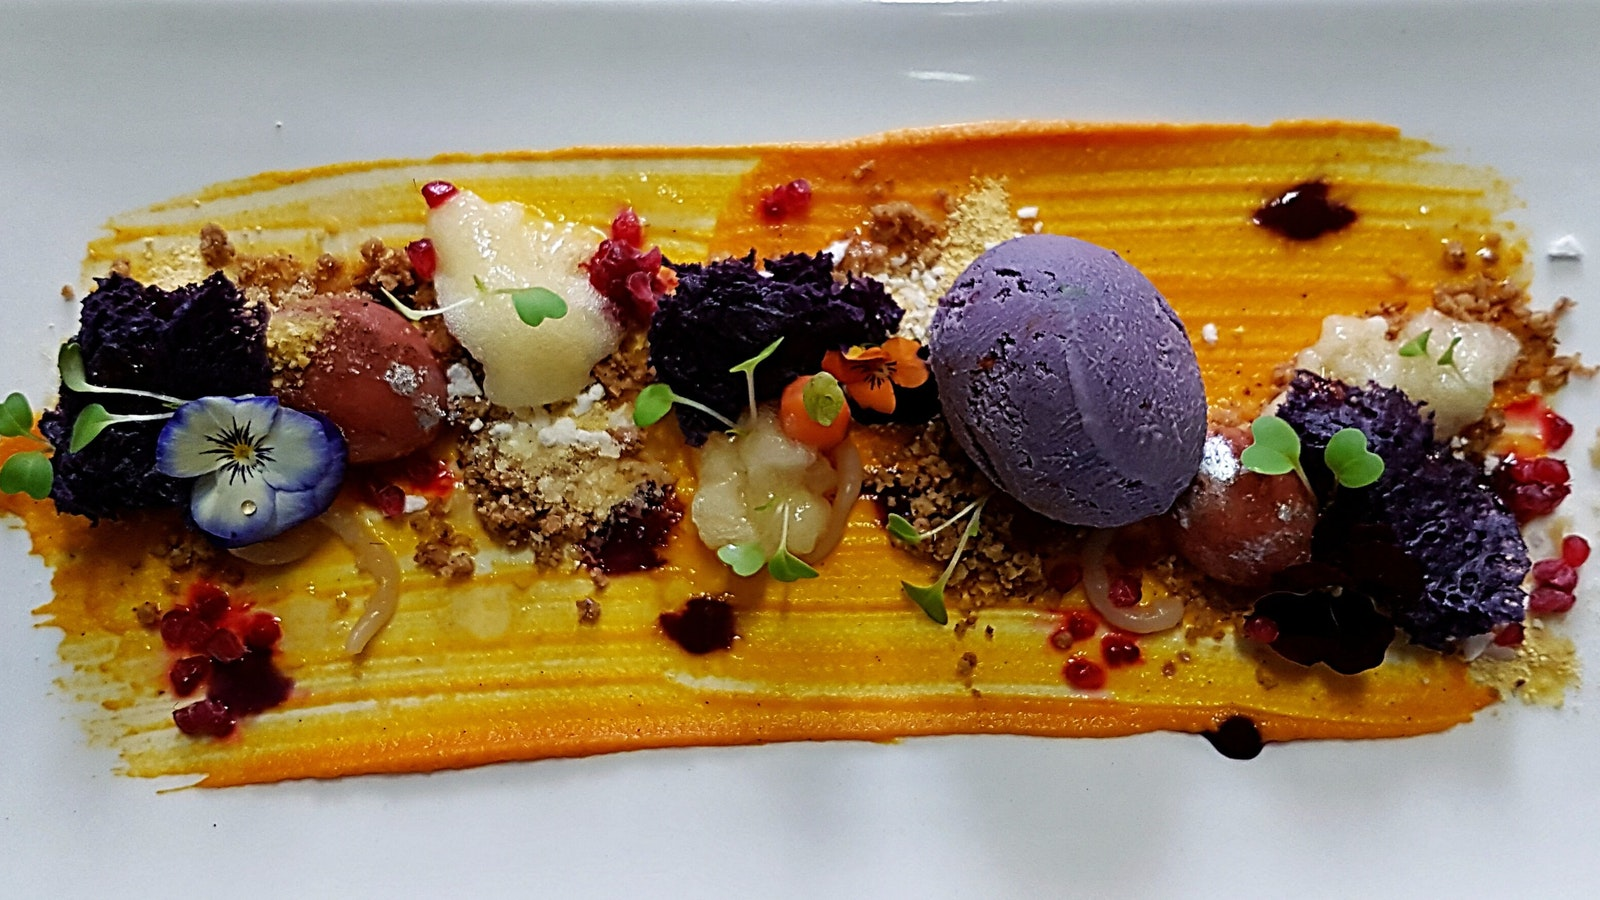 An amazing dessert featuring fruits and vegetables found in winter time